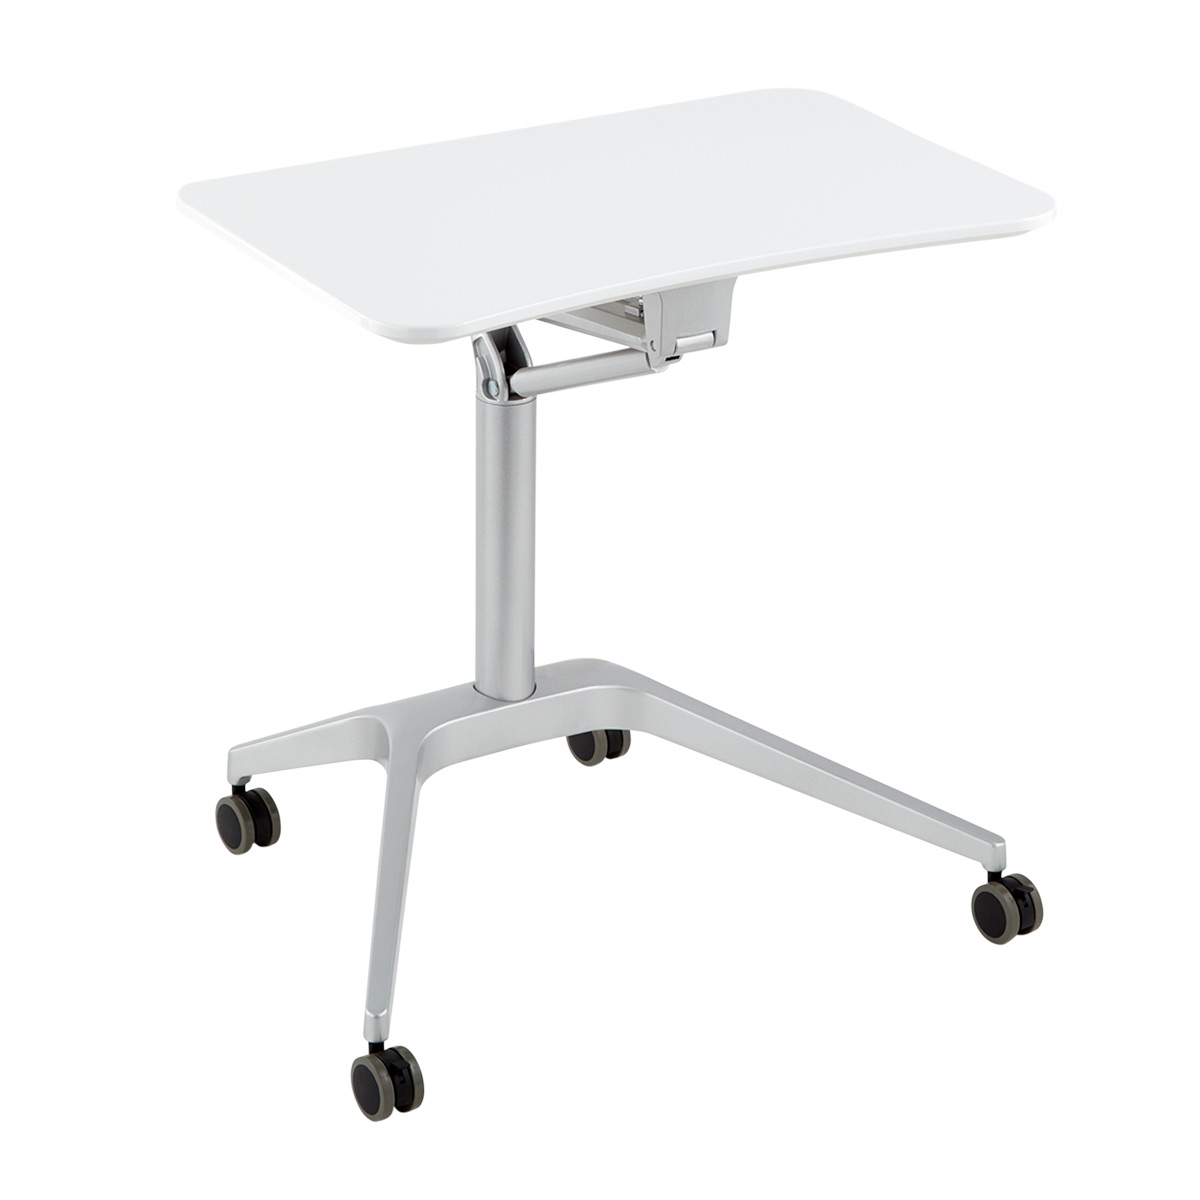 adjustable standing desk the container store rh containerstore com standing desk adjustable height standing desk adjustable keyboard tray